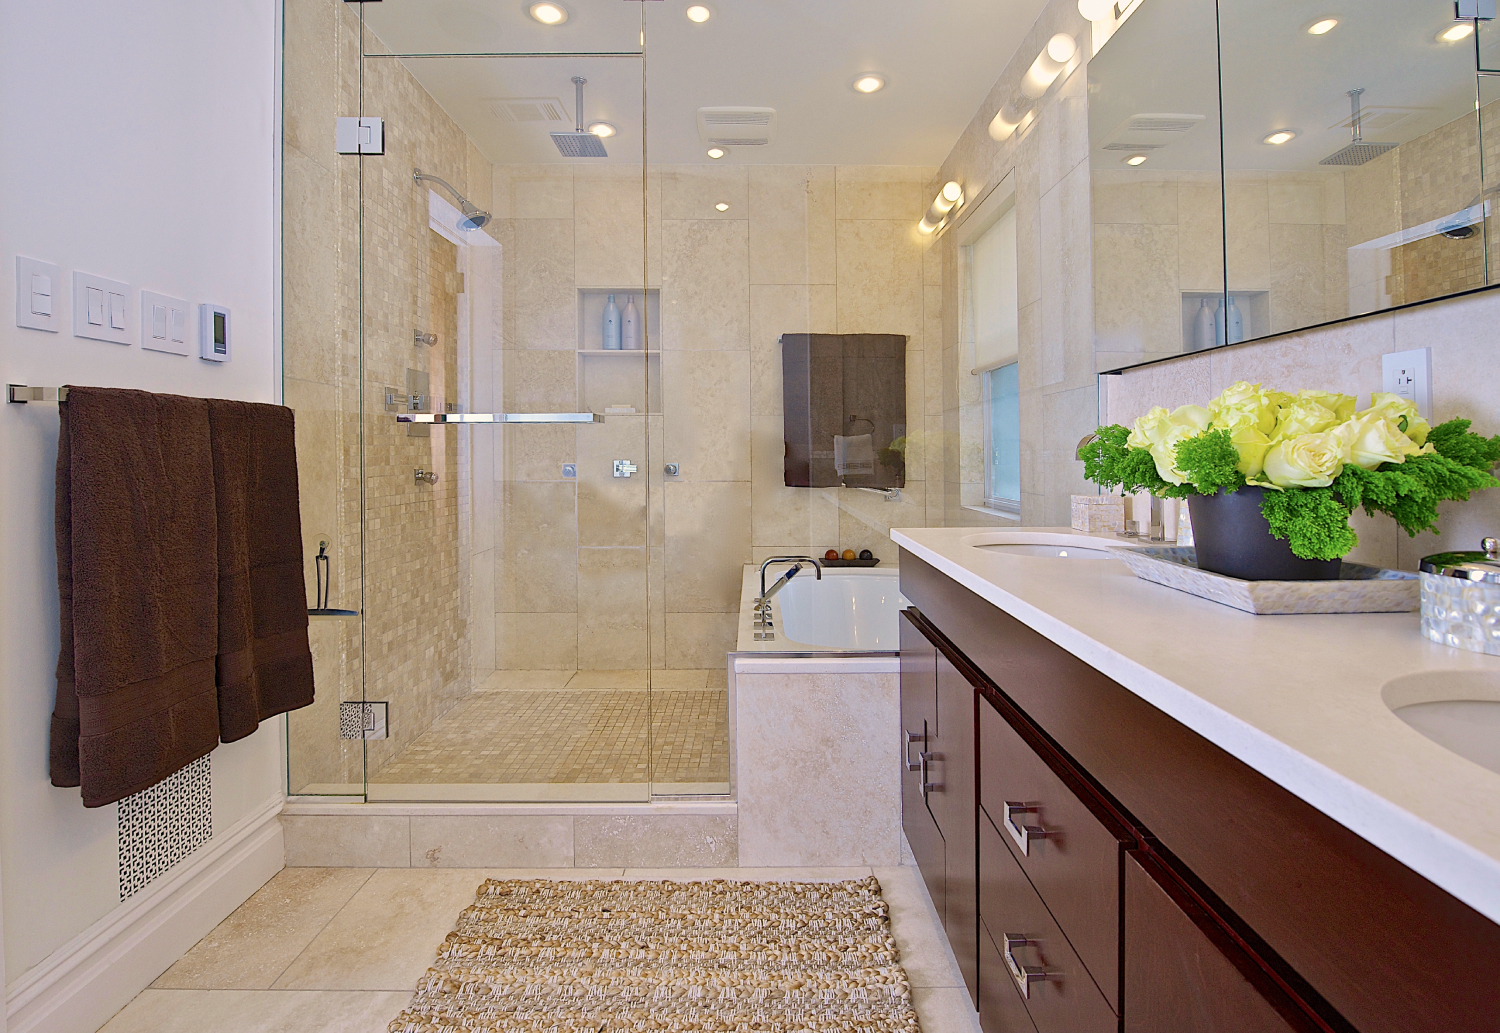 Neutral bathroom with tub inside a glass shower stall